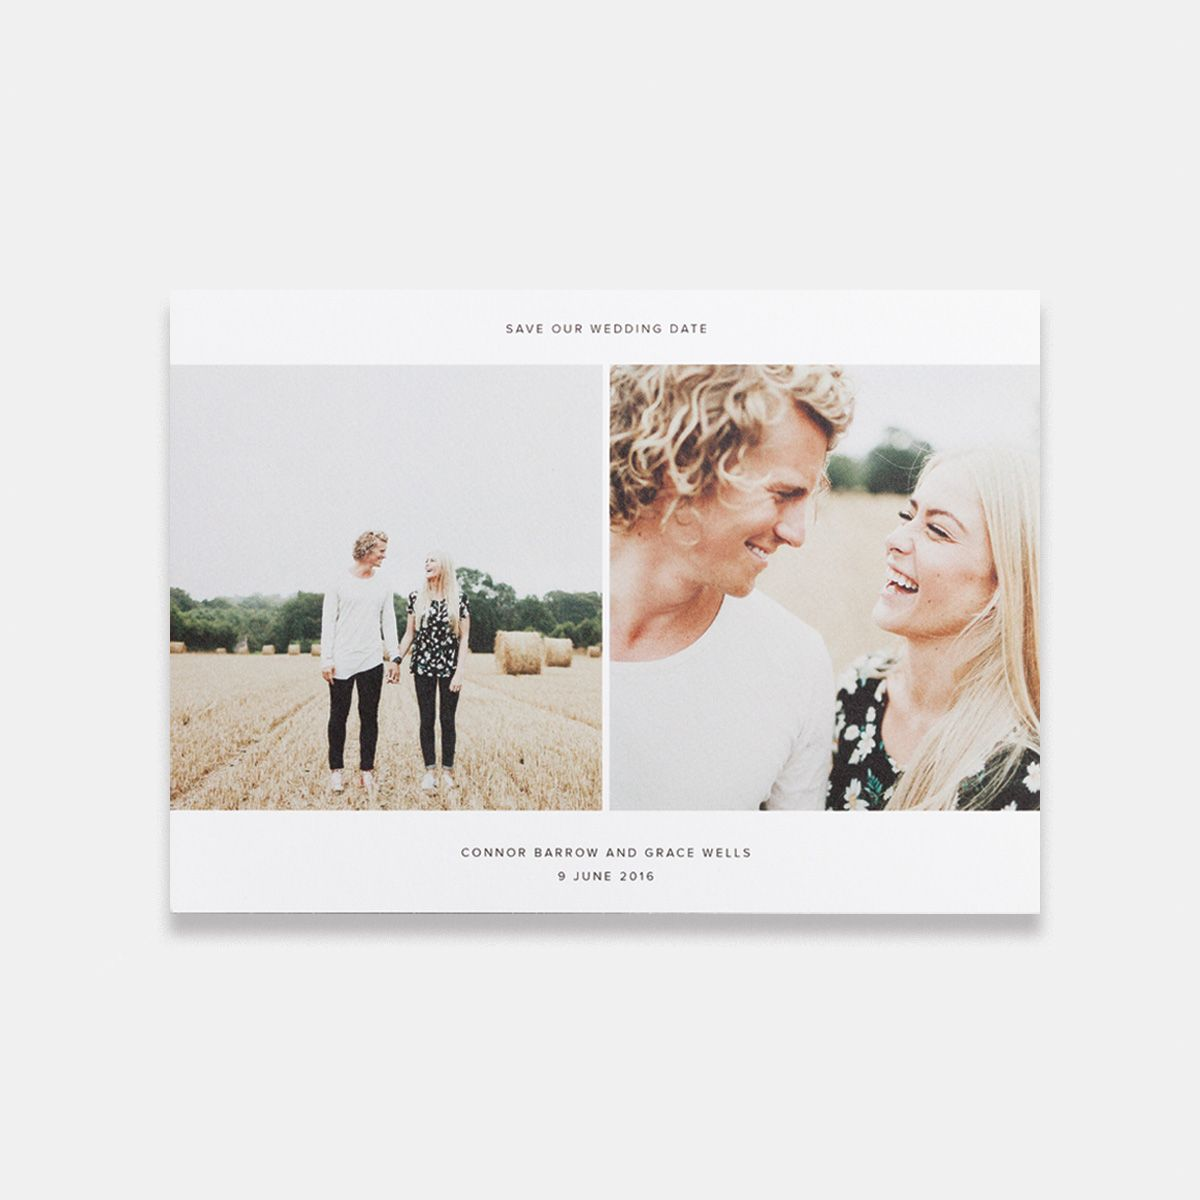 save-the-dates-main01-save-our-wedding-date-one_2x.jpg